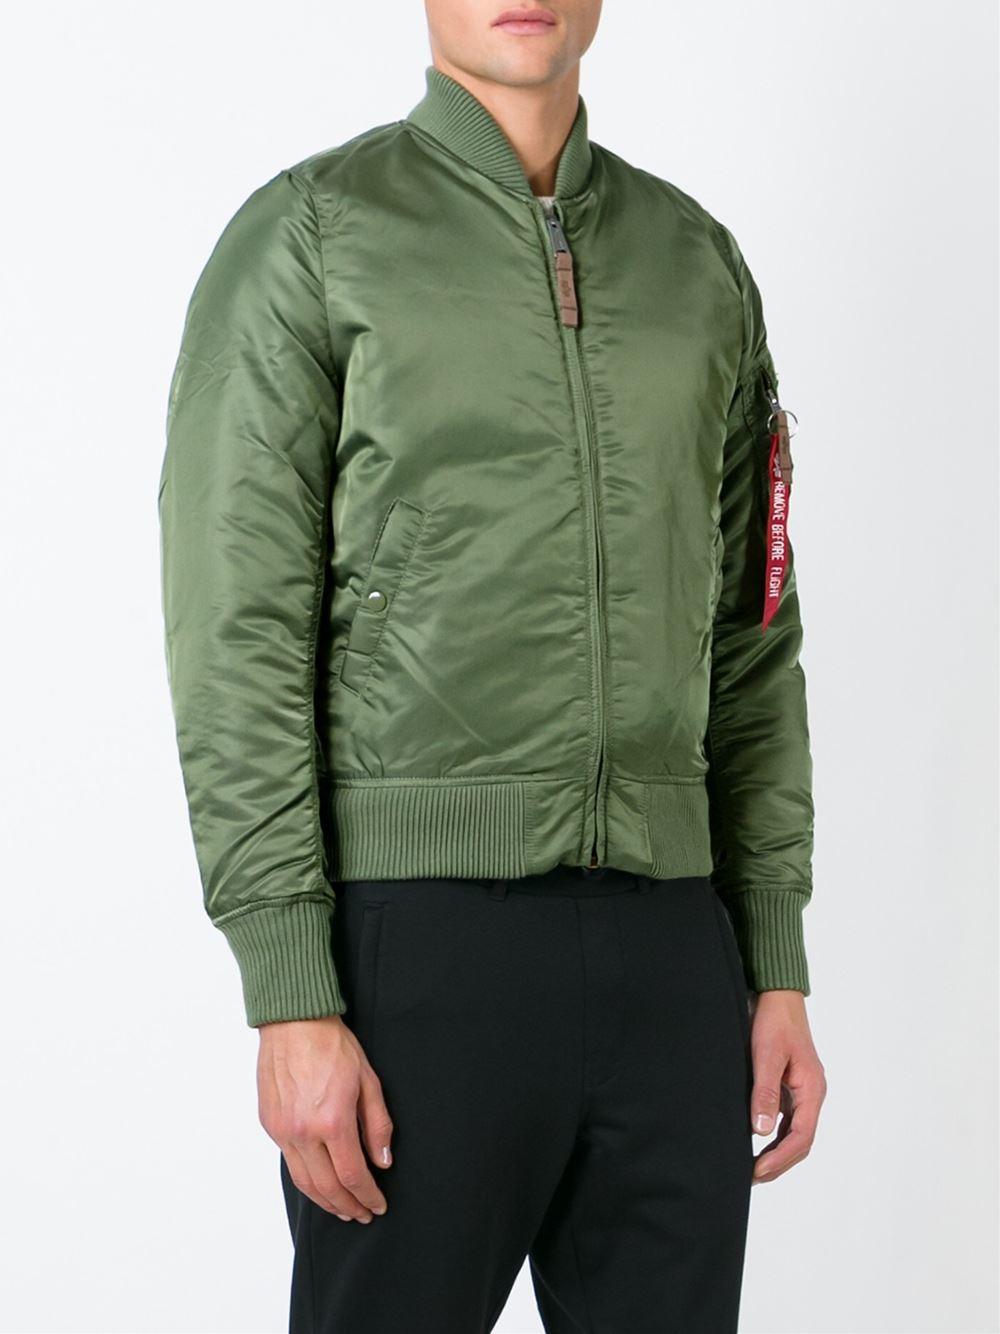 alpha industries 39 ma 1 39 flight jacket in green for men lyst. Black Bedroom Furniture Sets. Home Design Ideas